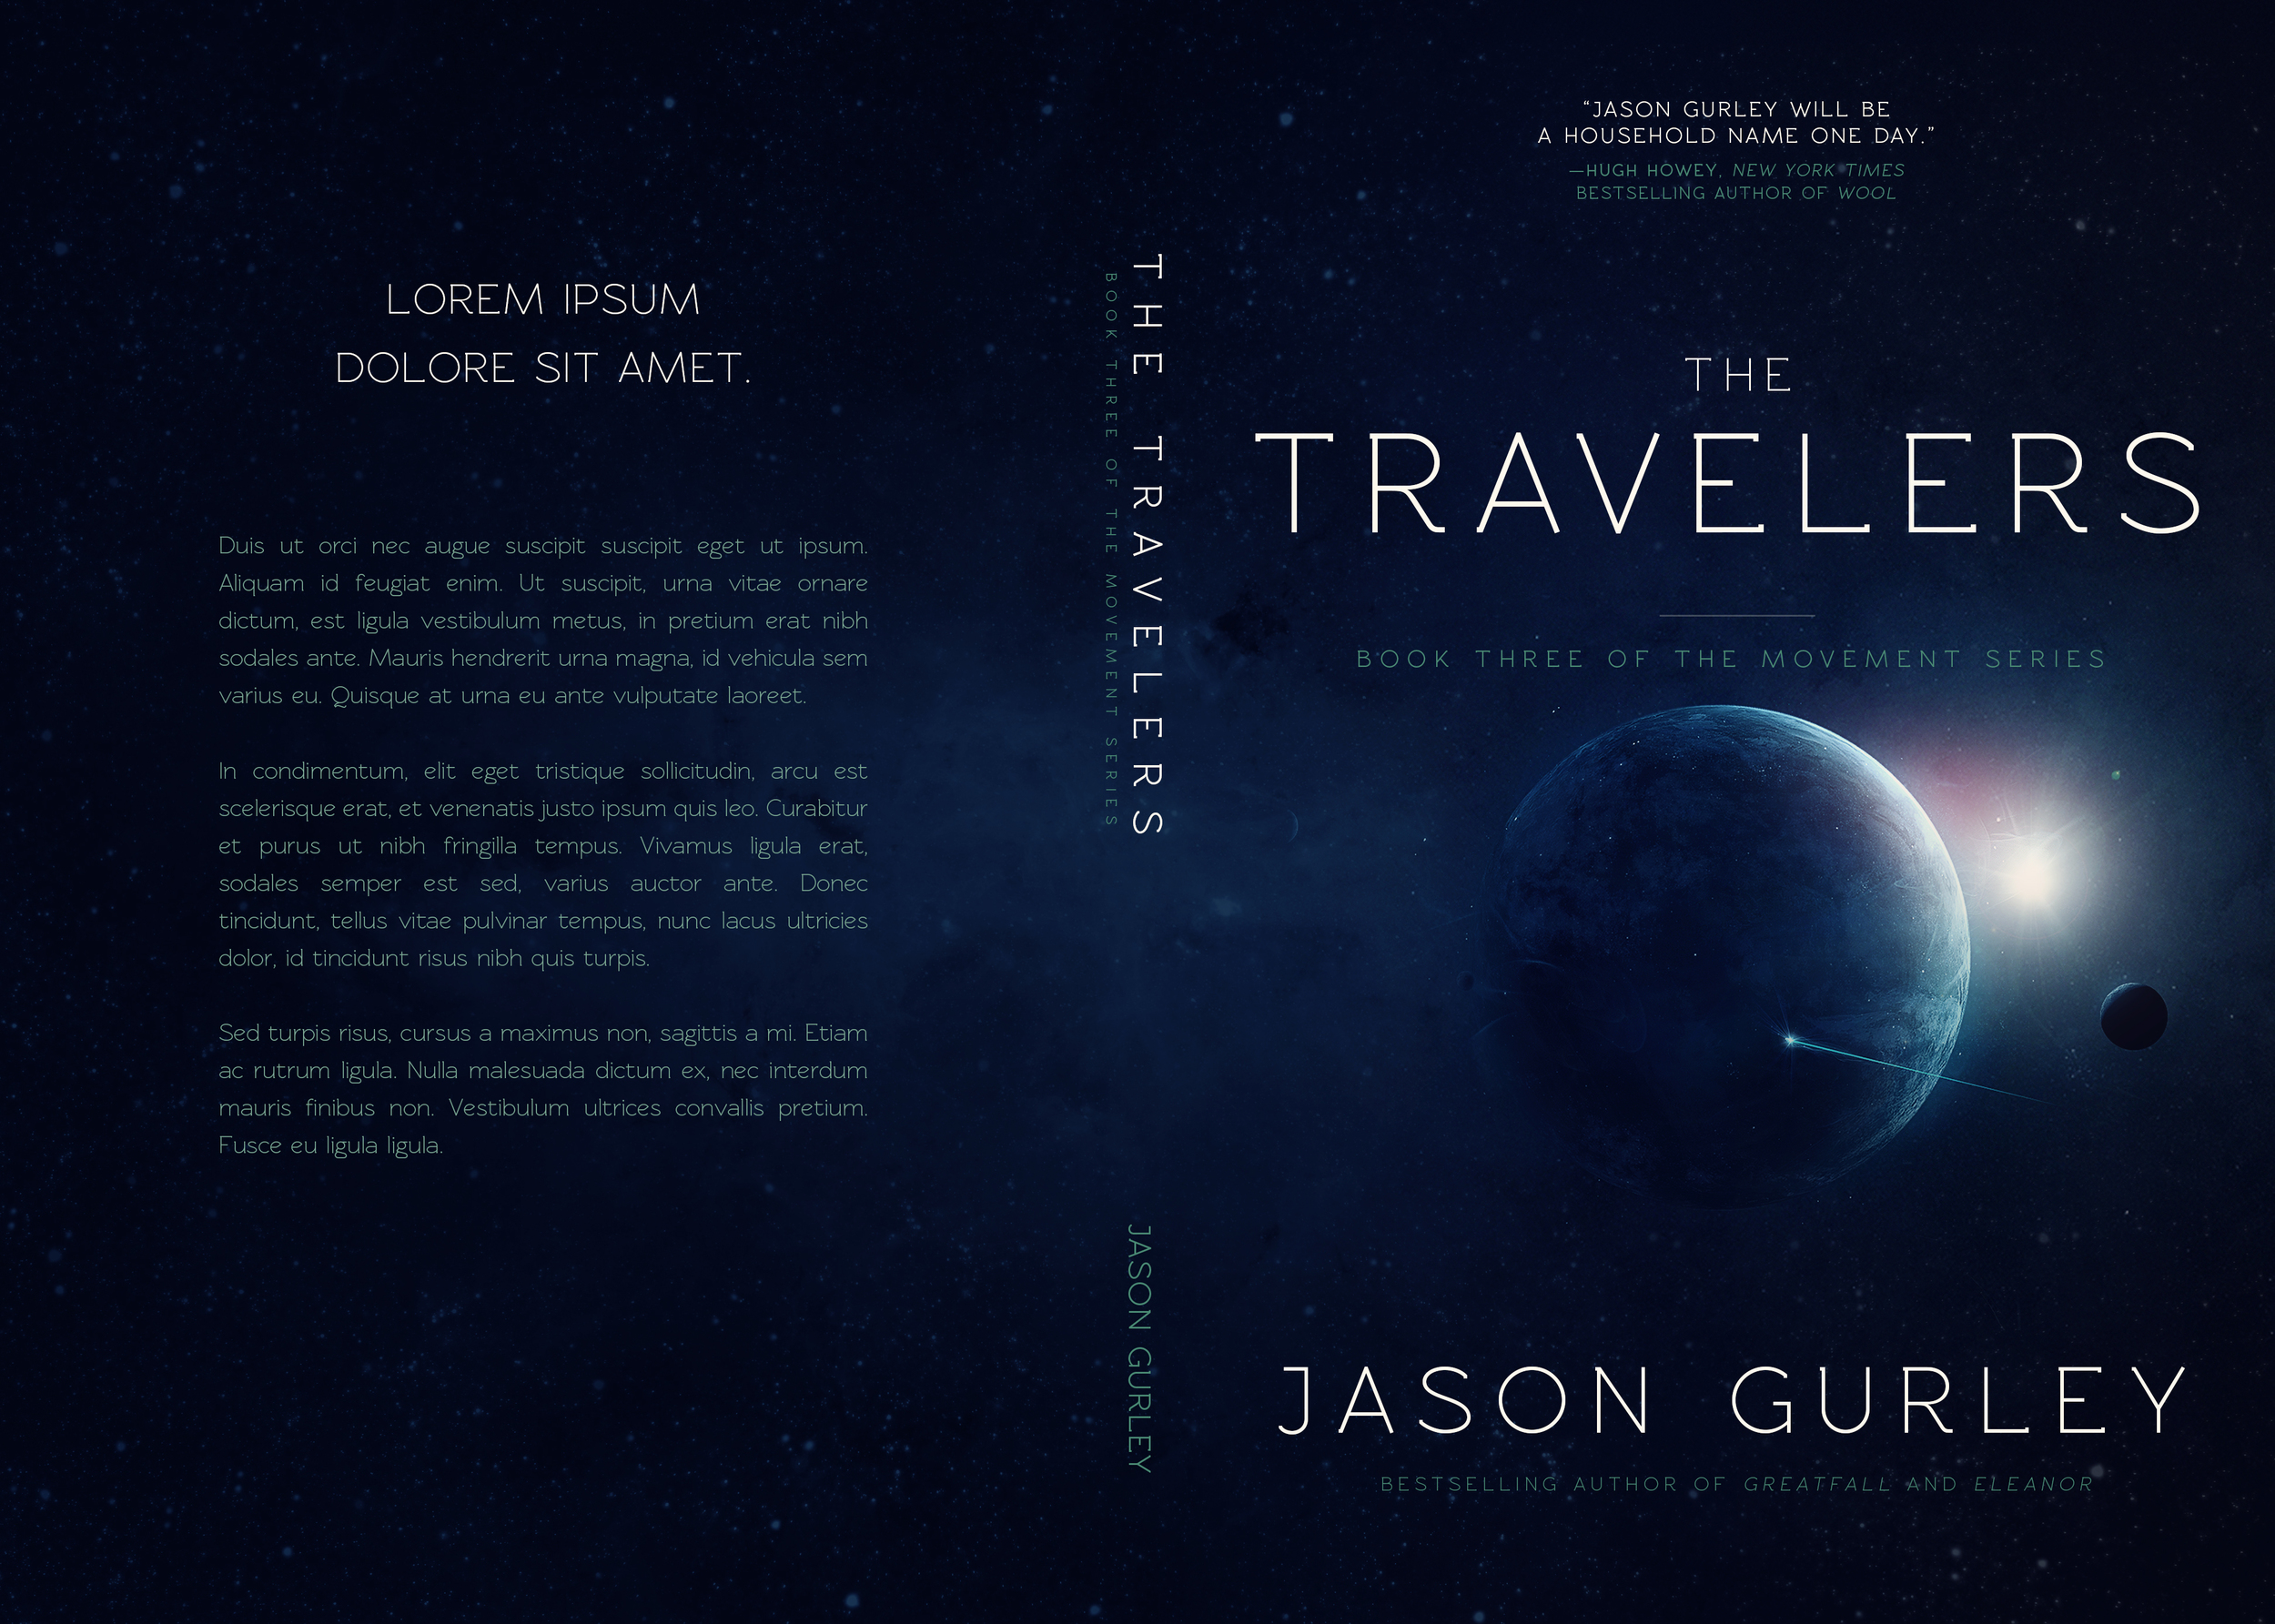 Gurley_THE_TRAVELERS_PrintEdition.jpg